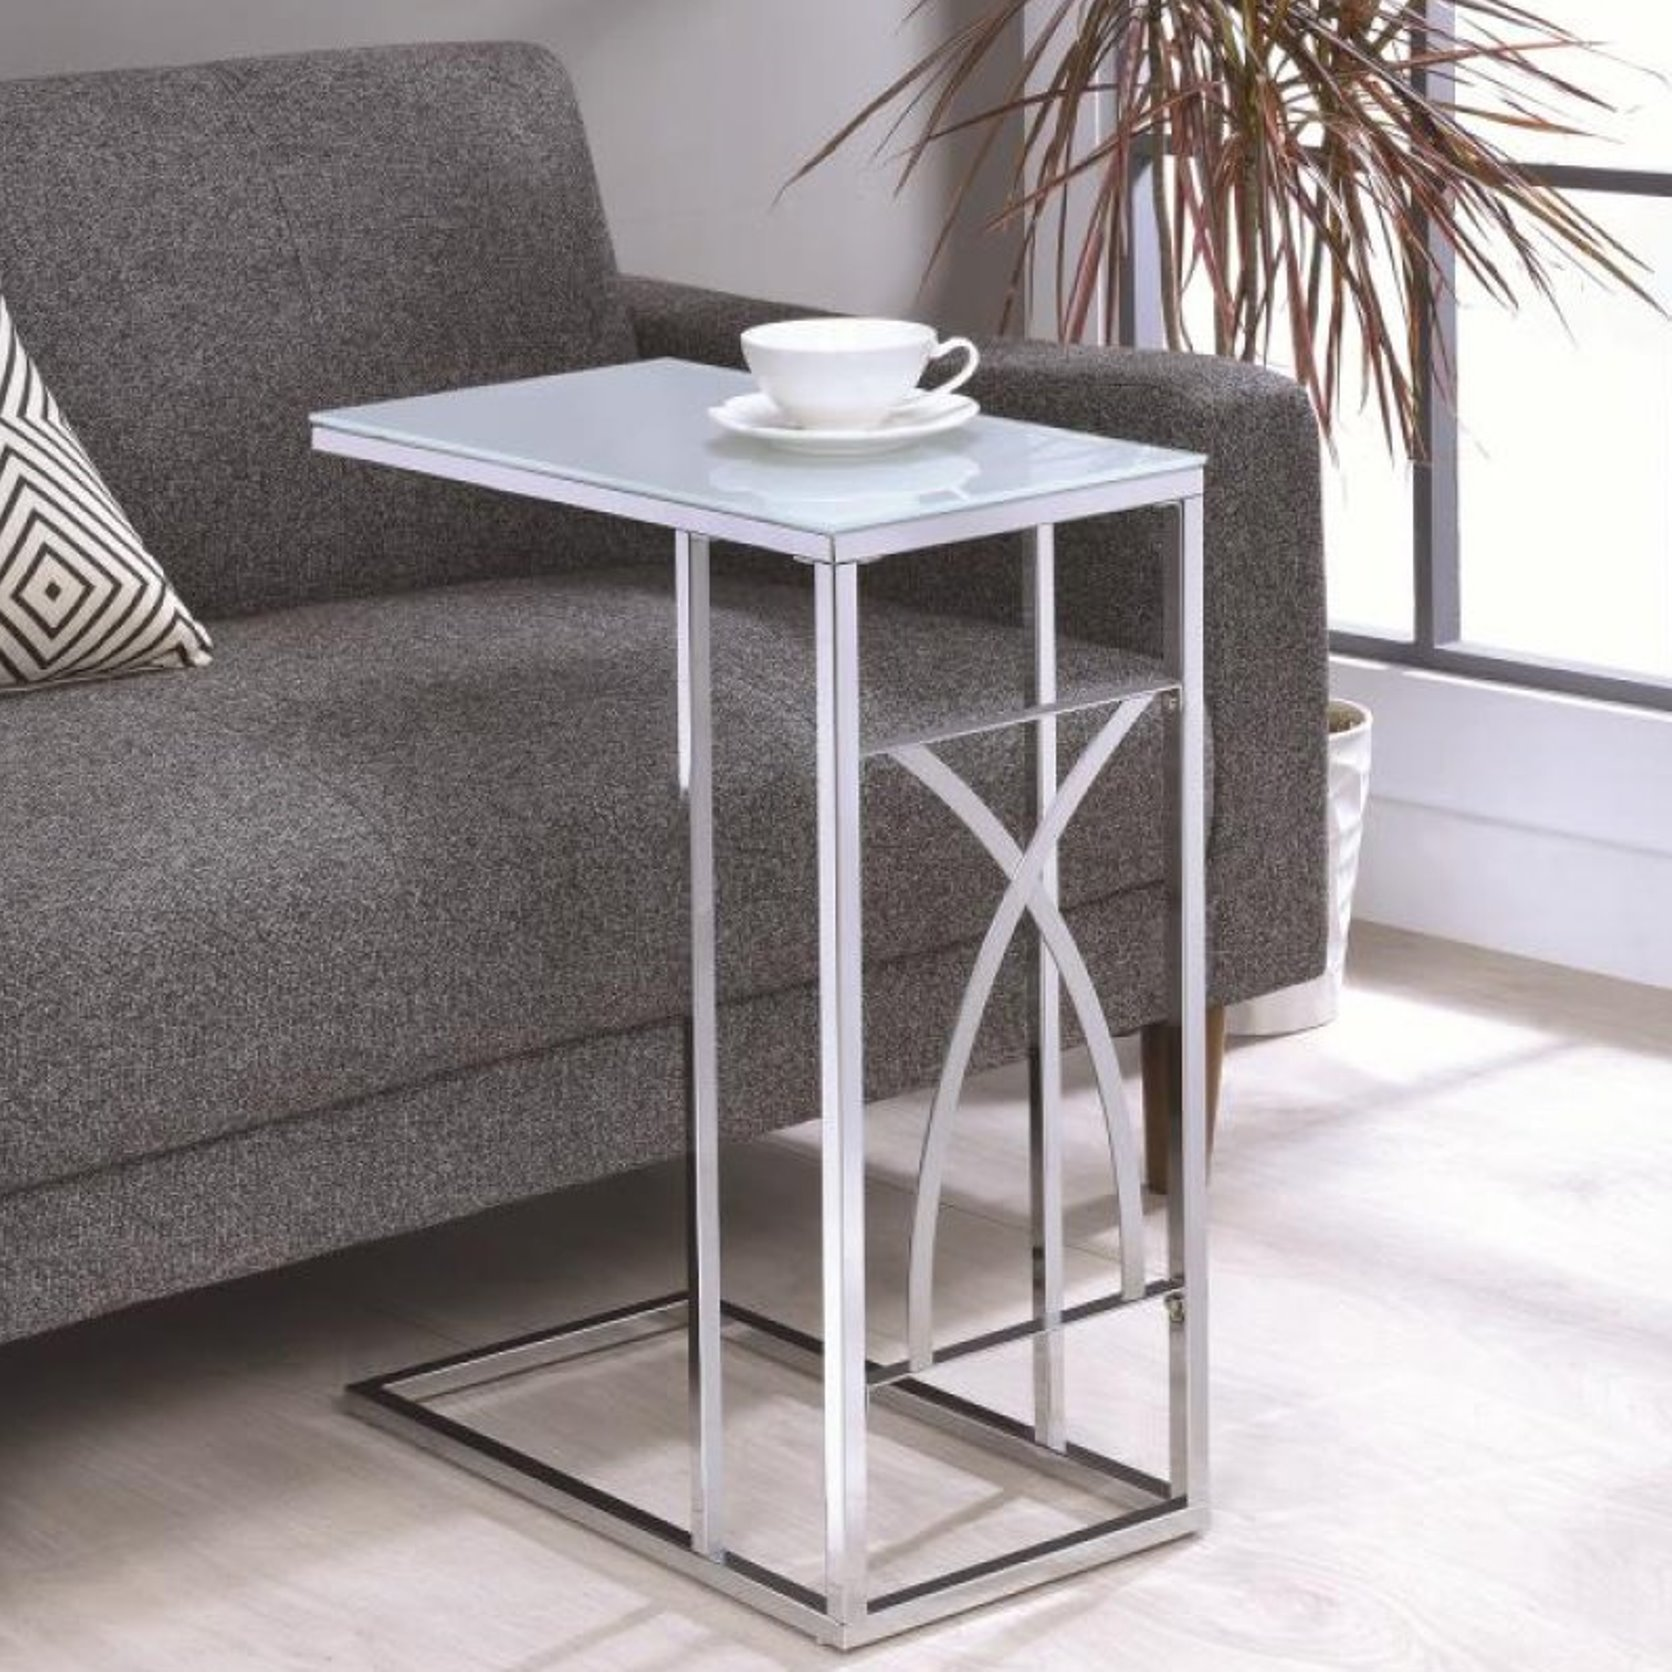 modern design living room chrome accent snack table with frosted tempered glass top free shipping today inch high end oval and metal coffee wicker patio set dining clearance